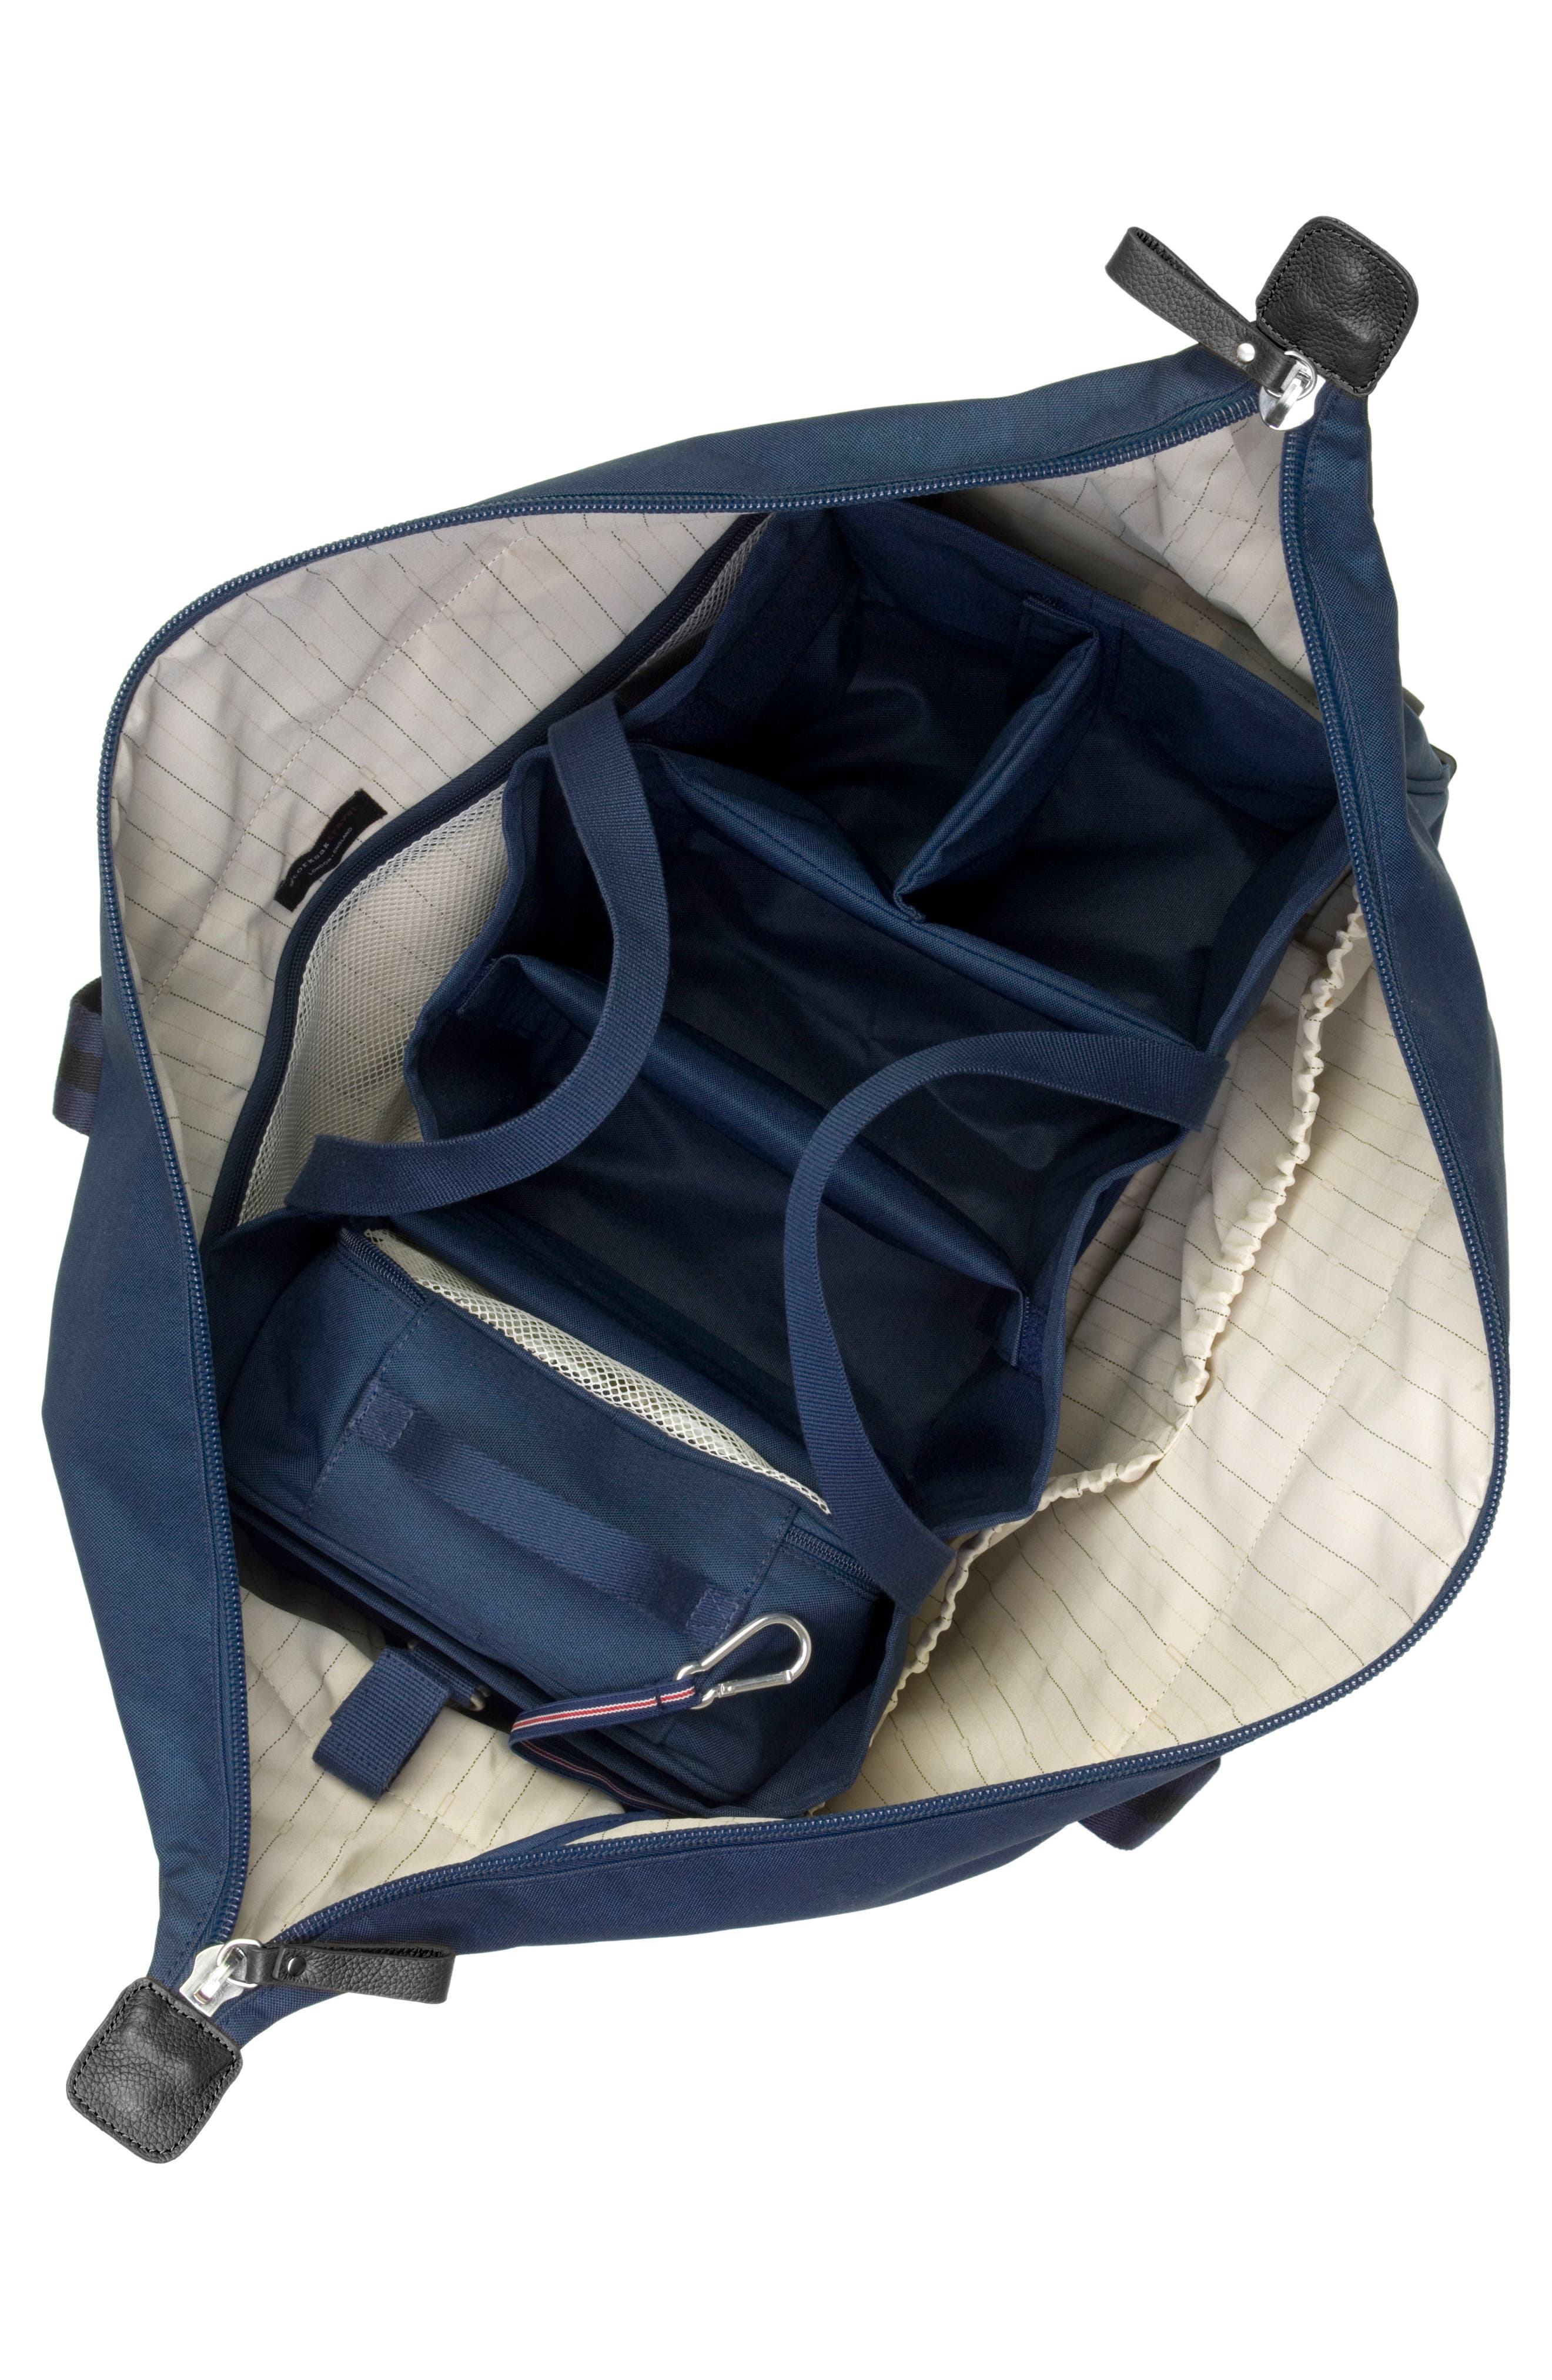 Cabin Wheeled Carry-On with Hanging Organizer,                             Alternate thumbnail 5, color,                             Navy